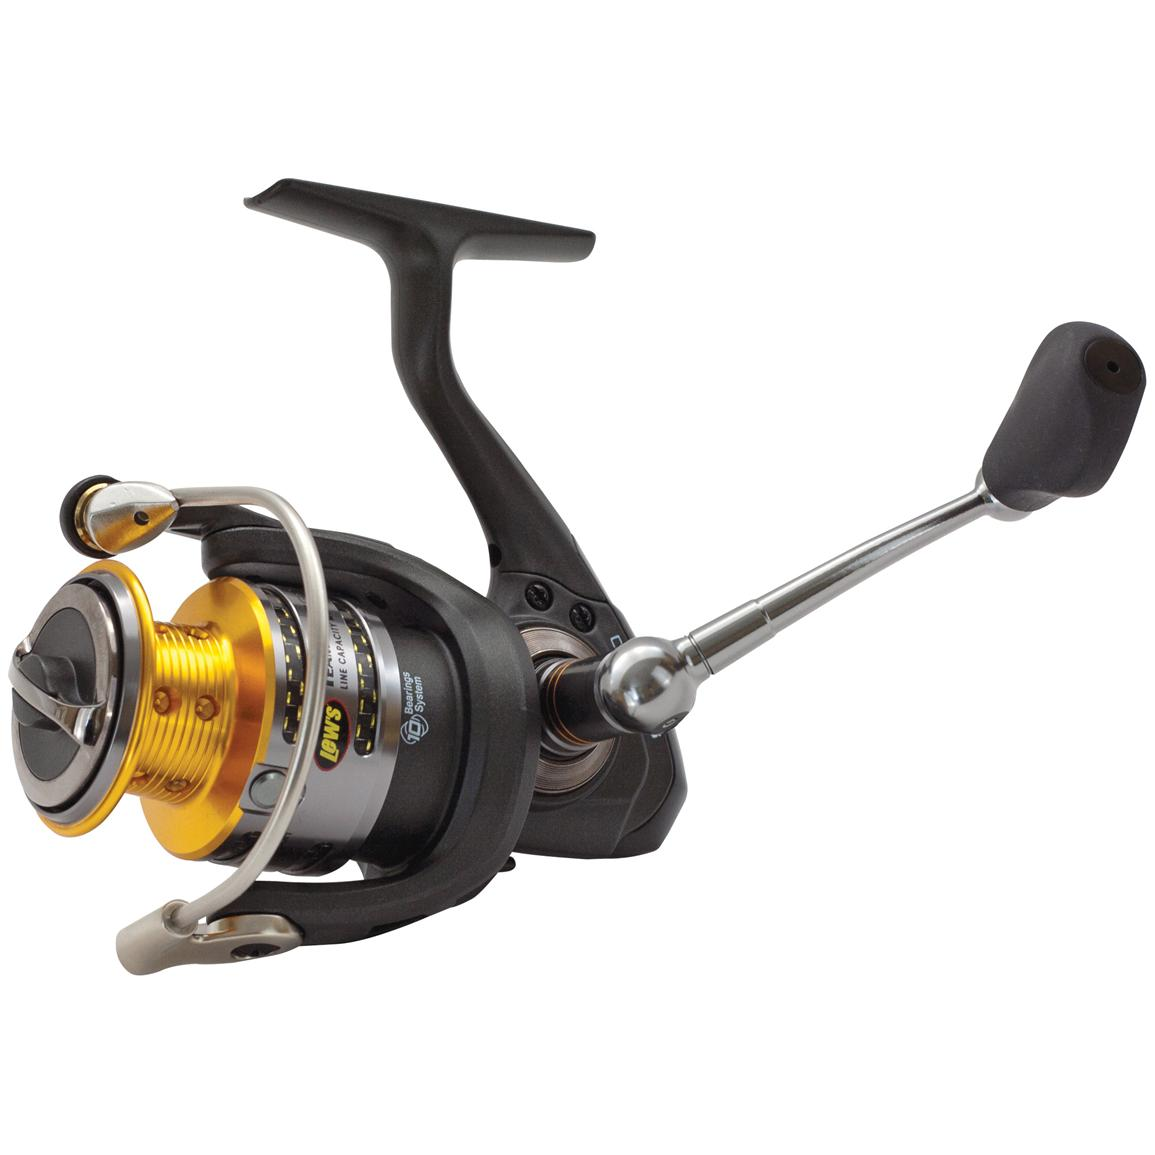 Team Lew's® Gold Spin® High Speed Spin® Spinning Reel